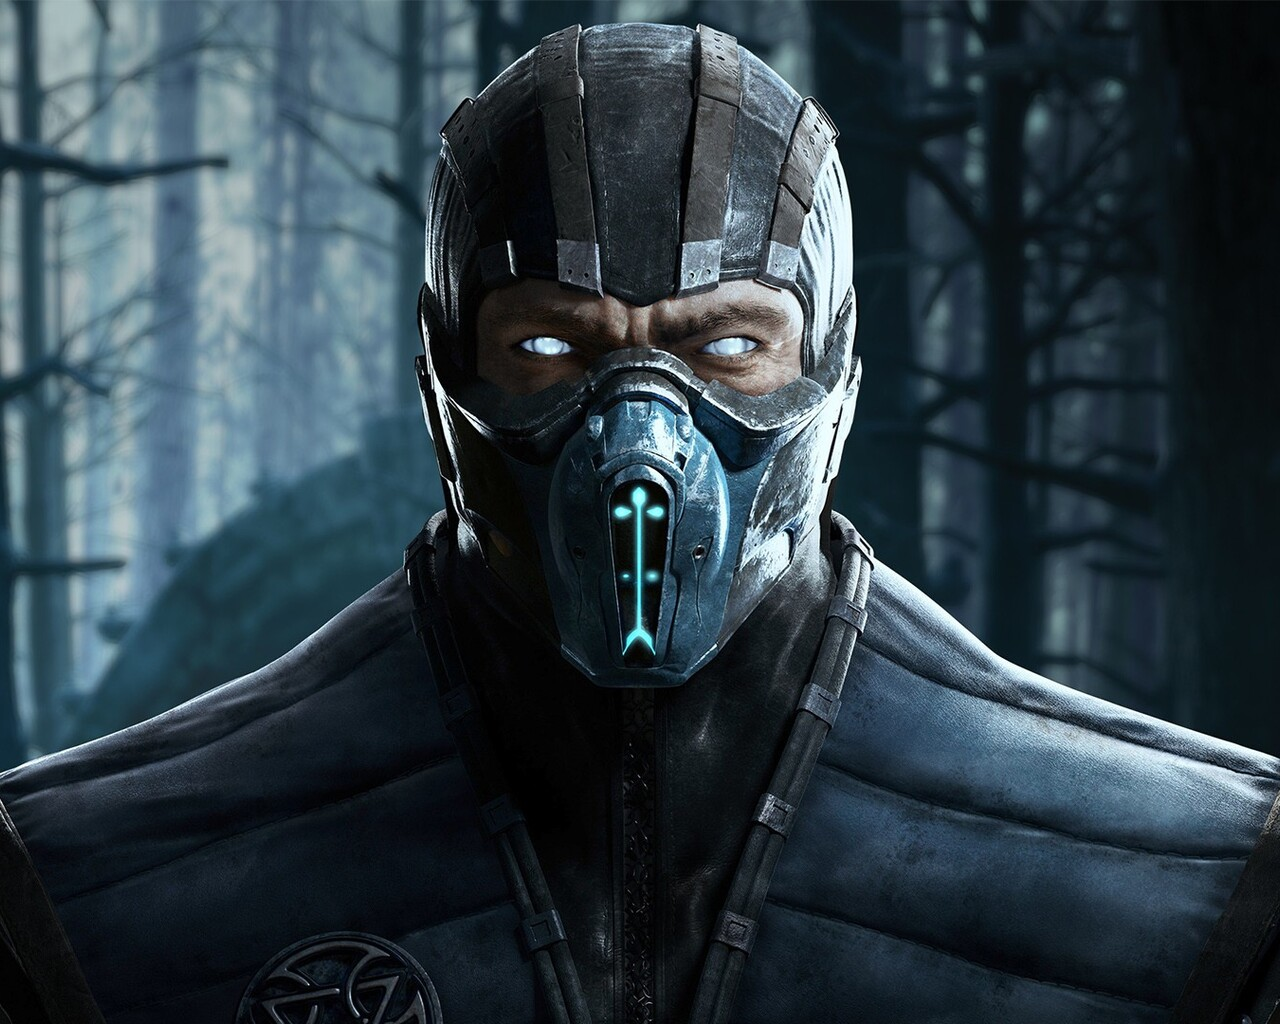 1280x1024 Mortal Kombat X Sub Zero 1280x1024 Resolution Hd 4k